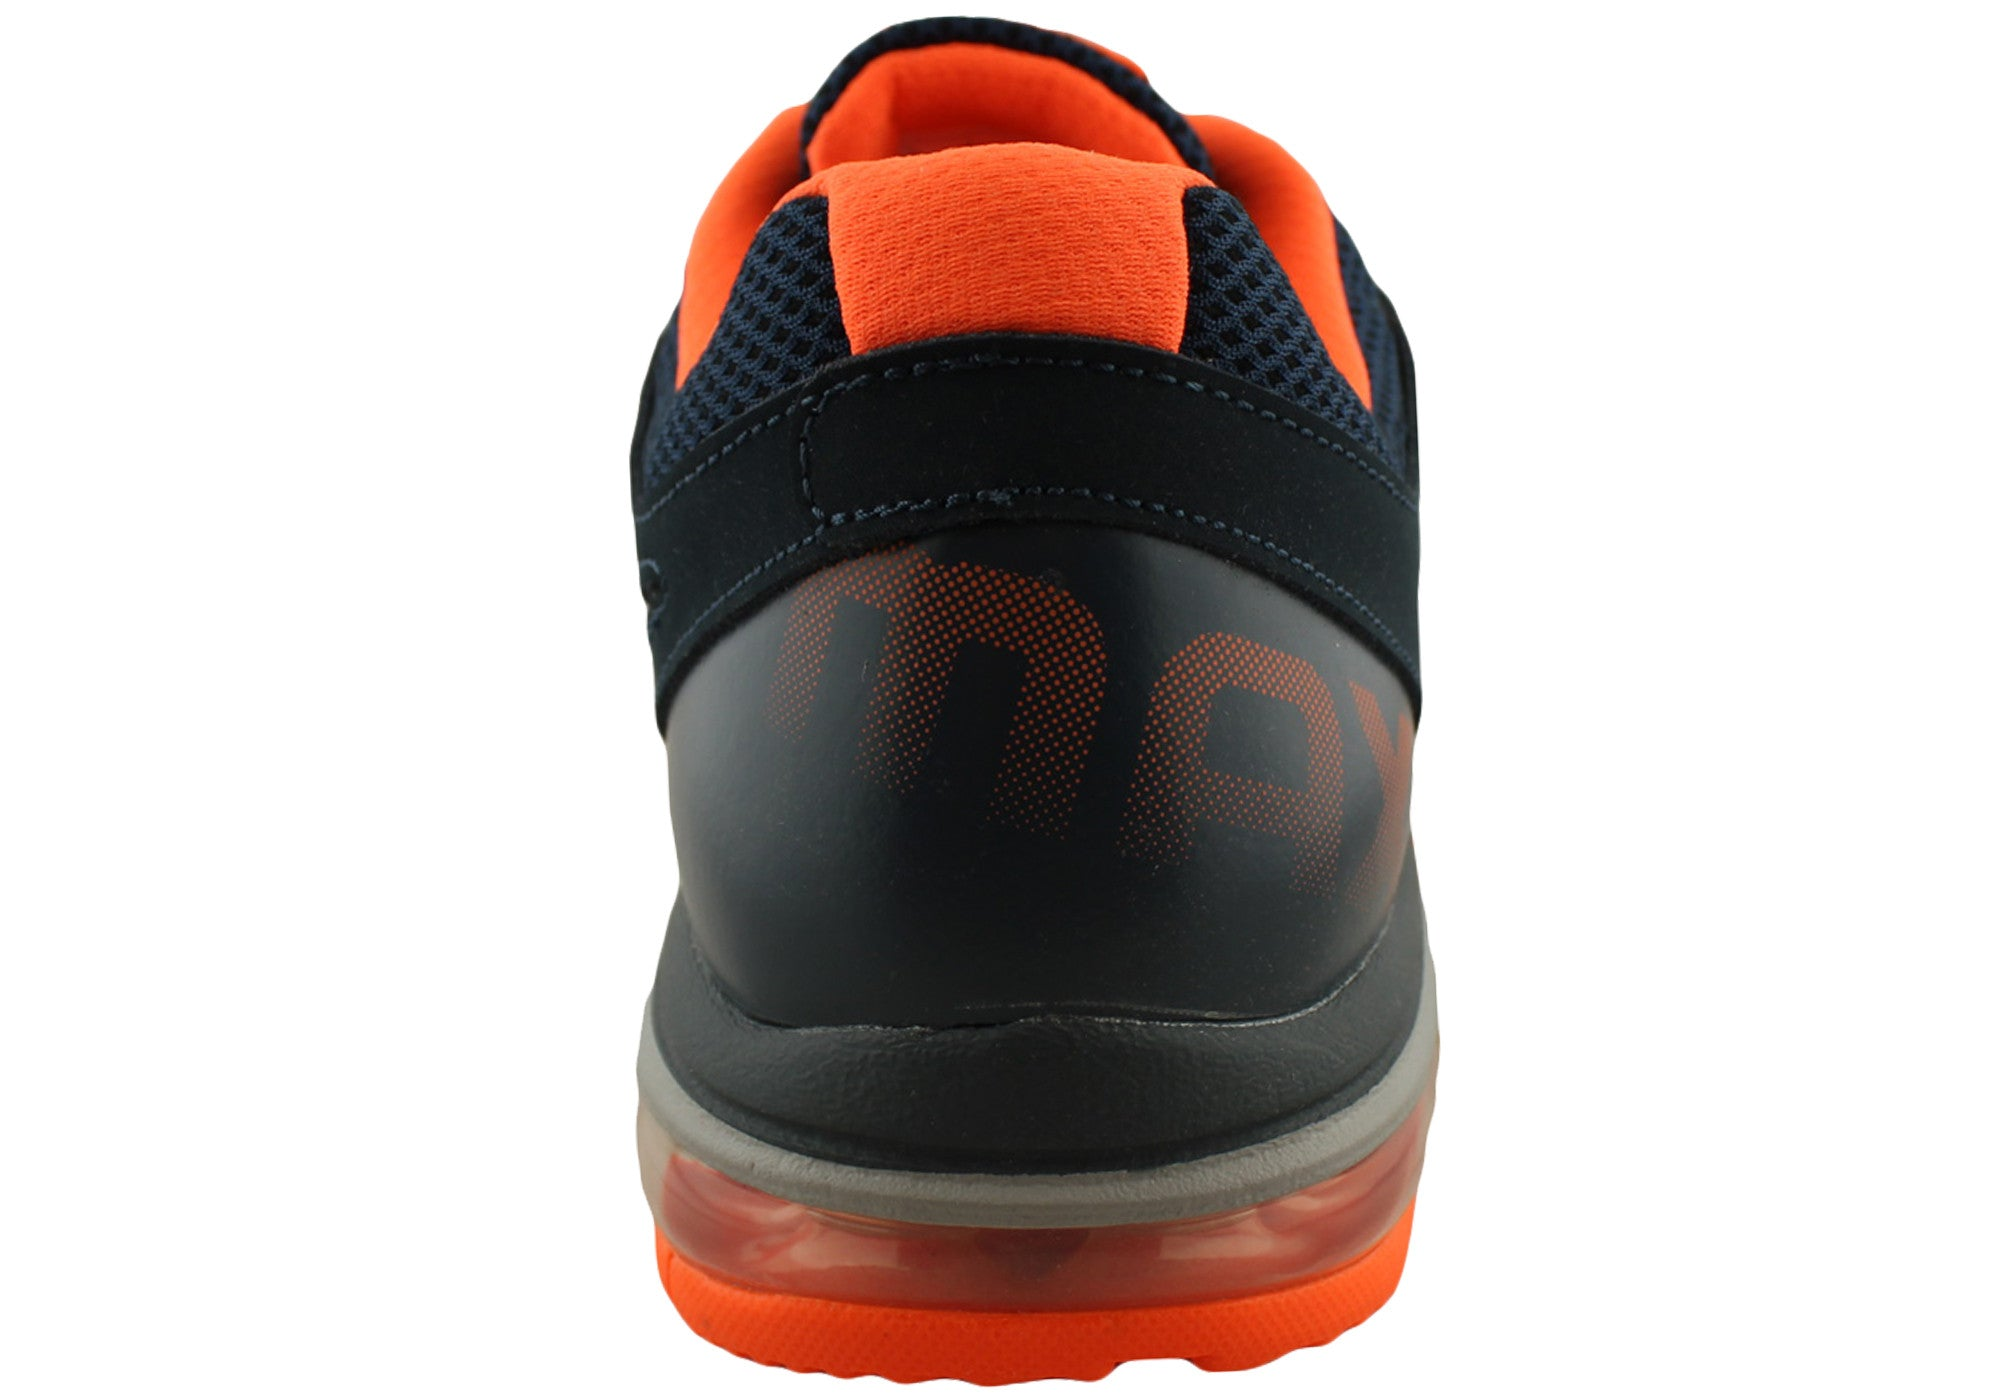 official photos 8fe2c 86aaa Nike Air Max Defy RN Mens Running/Sports Shoes   Brand House Direct